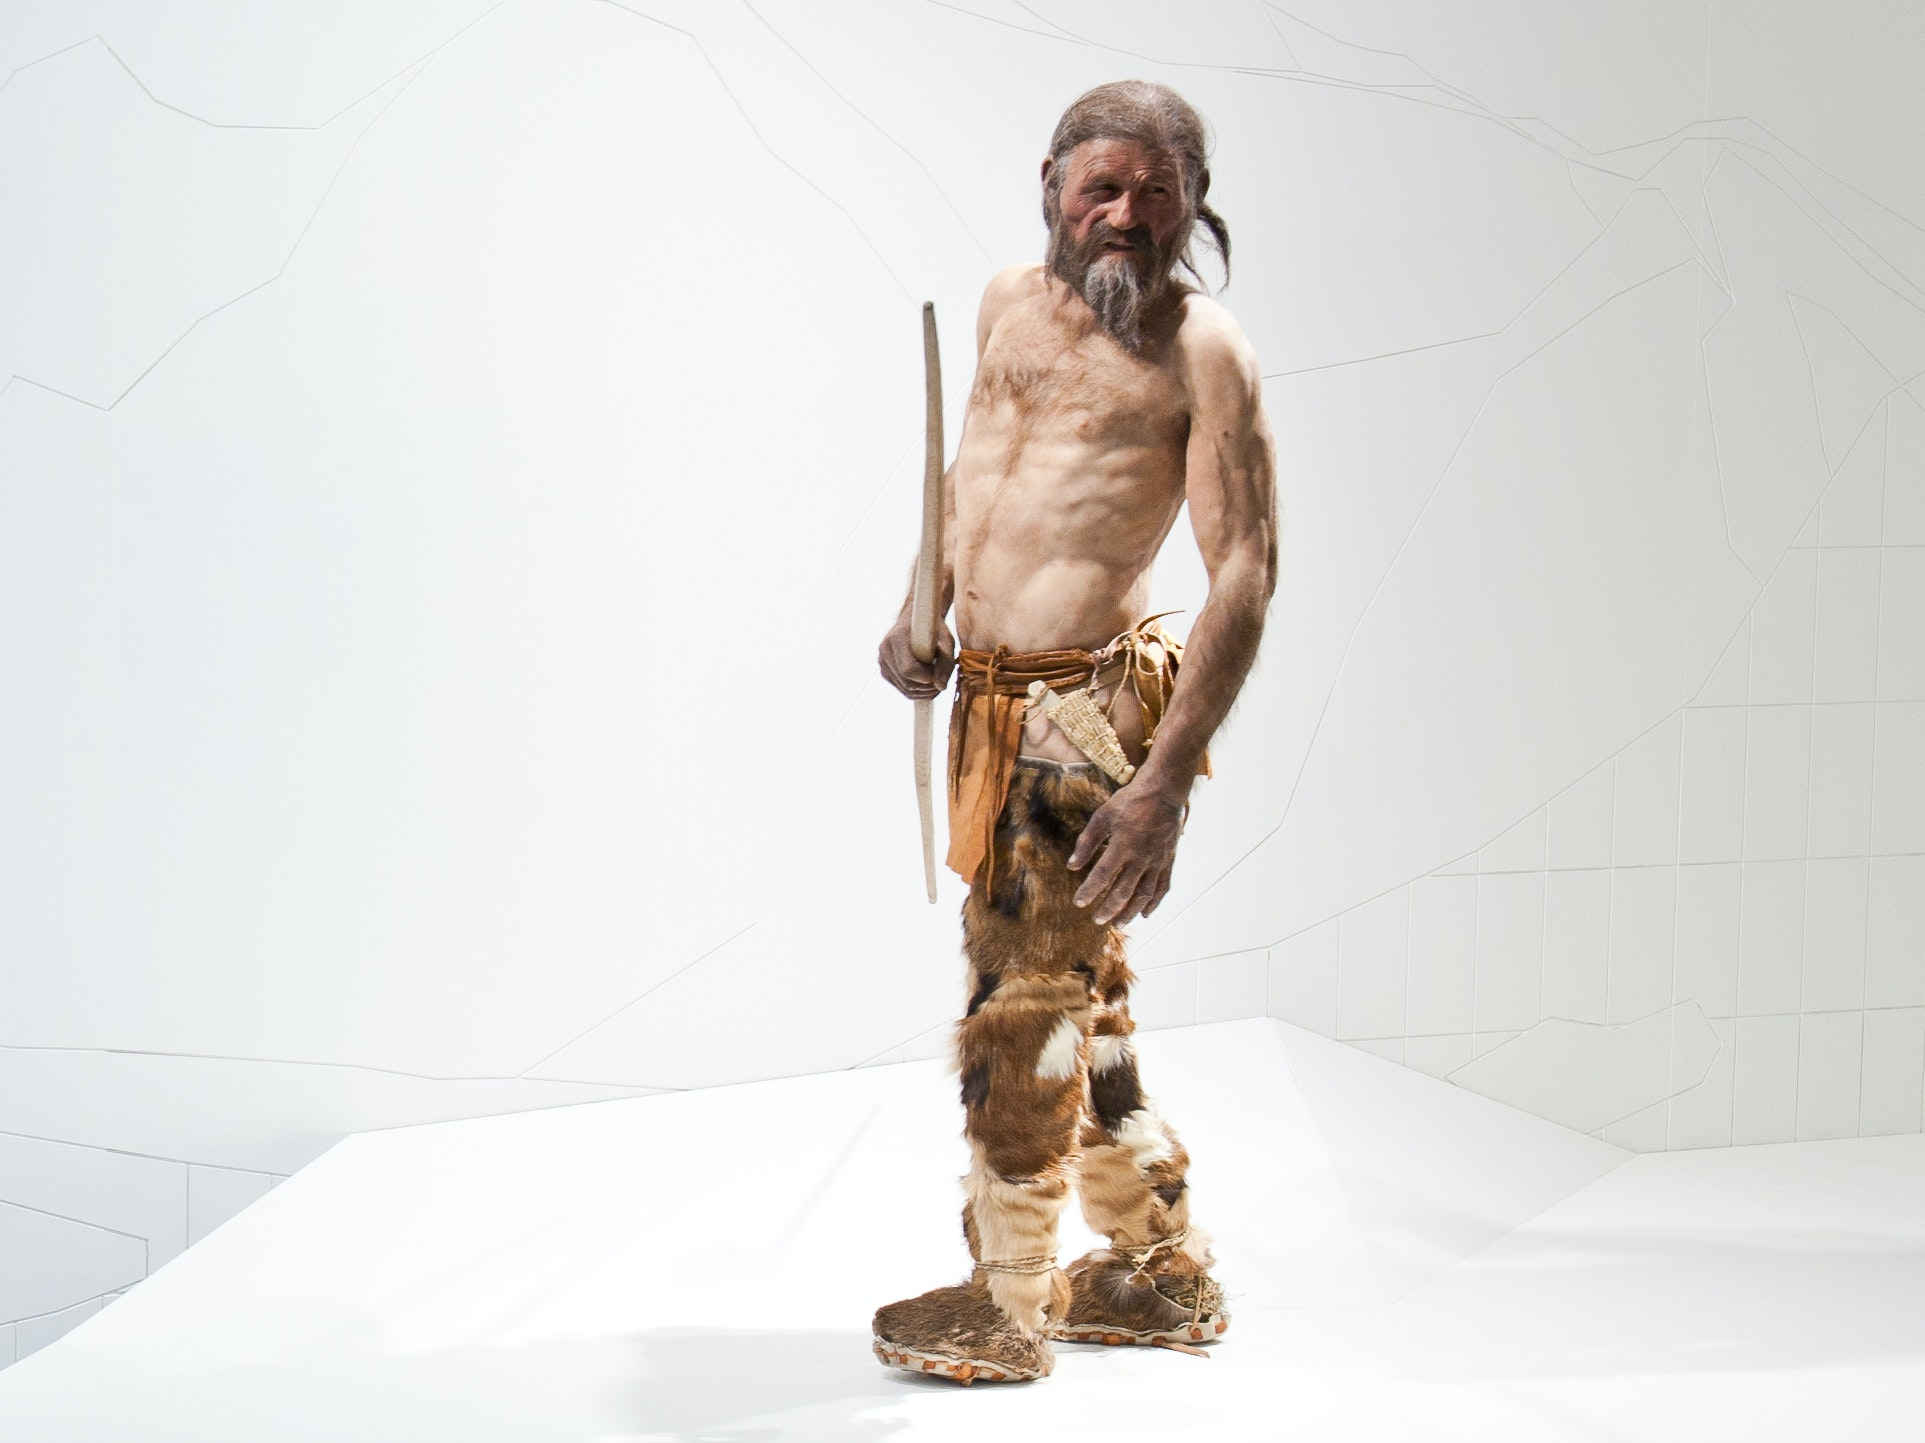 6 Things Ötzi the Iceman Has Shown Us in the Past 25 Years